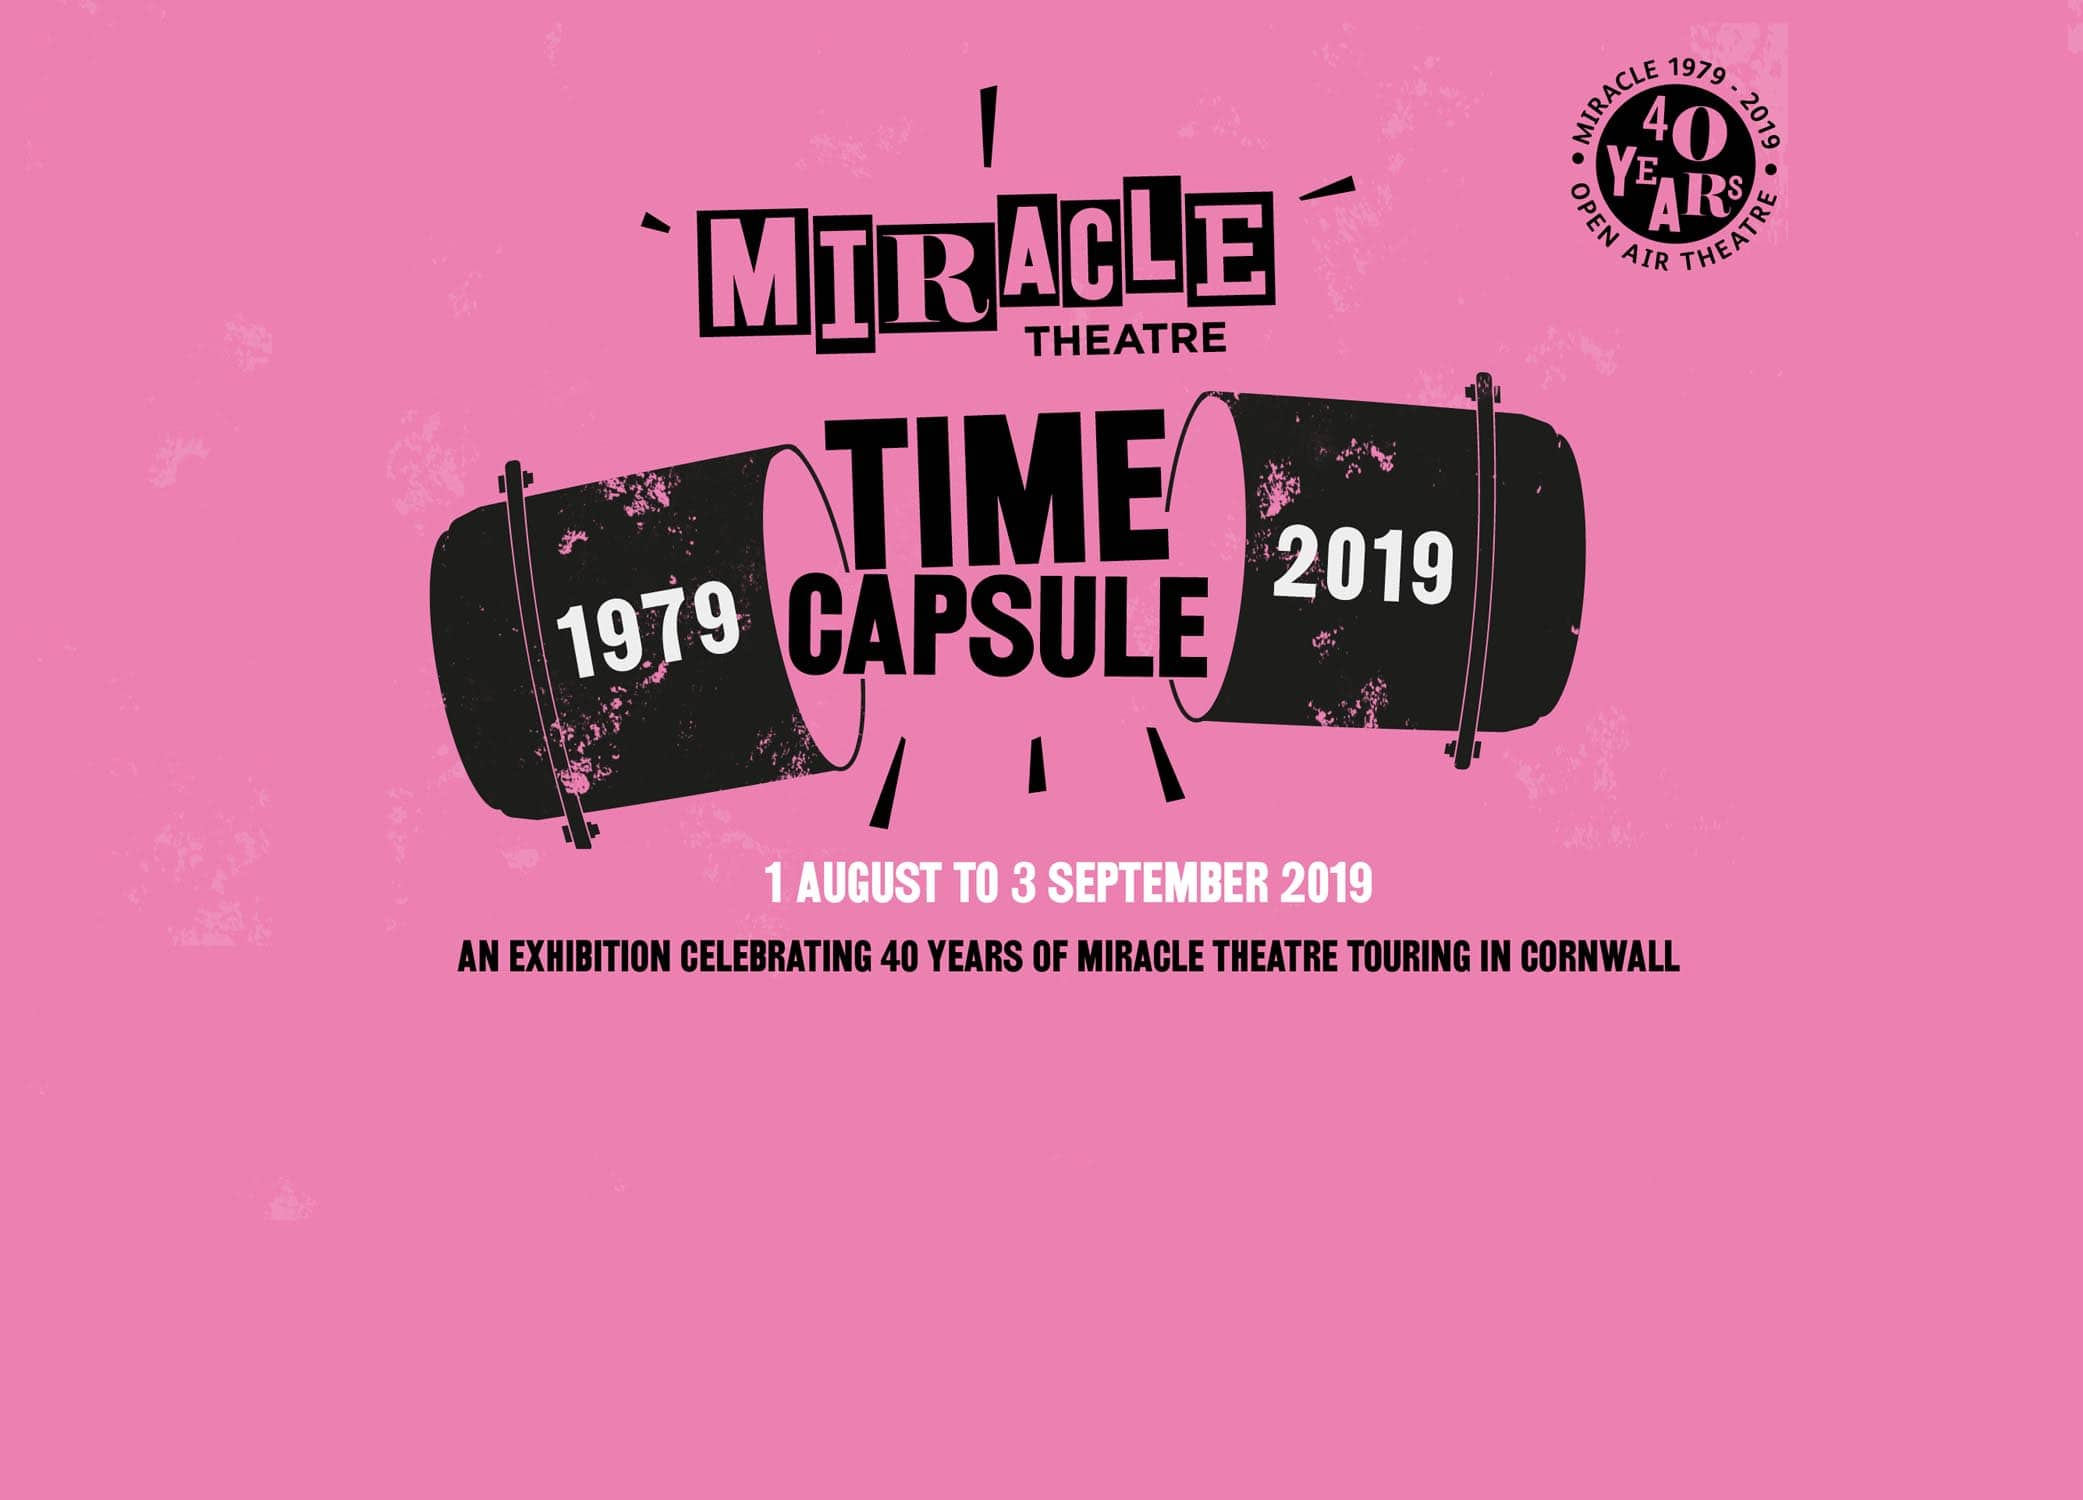 The Miracle Time Capsule is an exhibition celebrating 40 years of Miracle Theatre at Museum of Cornish Life until 3 Sept